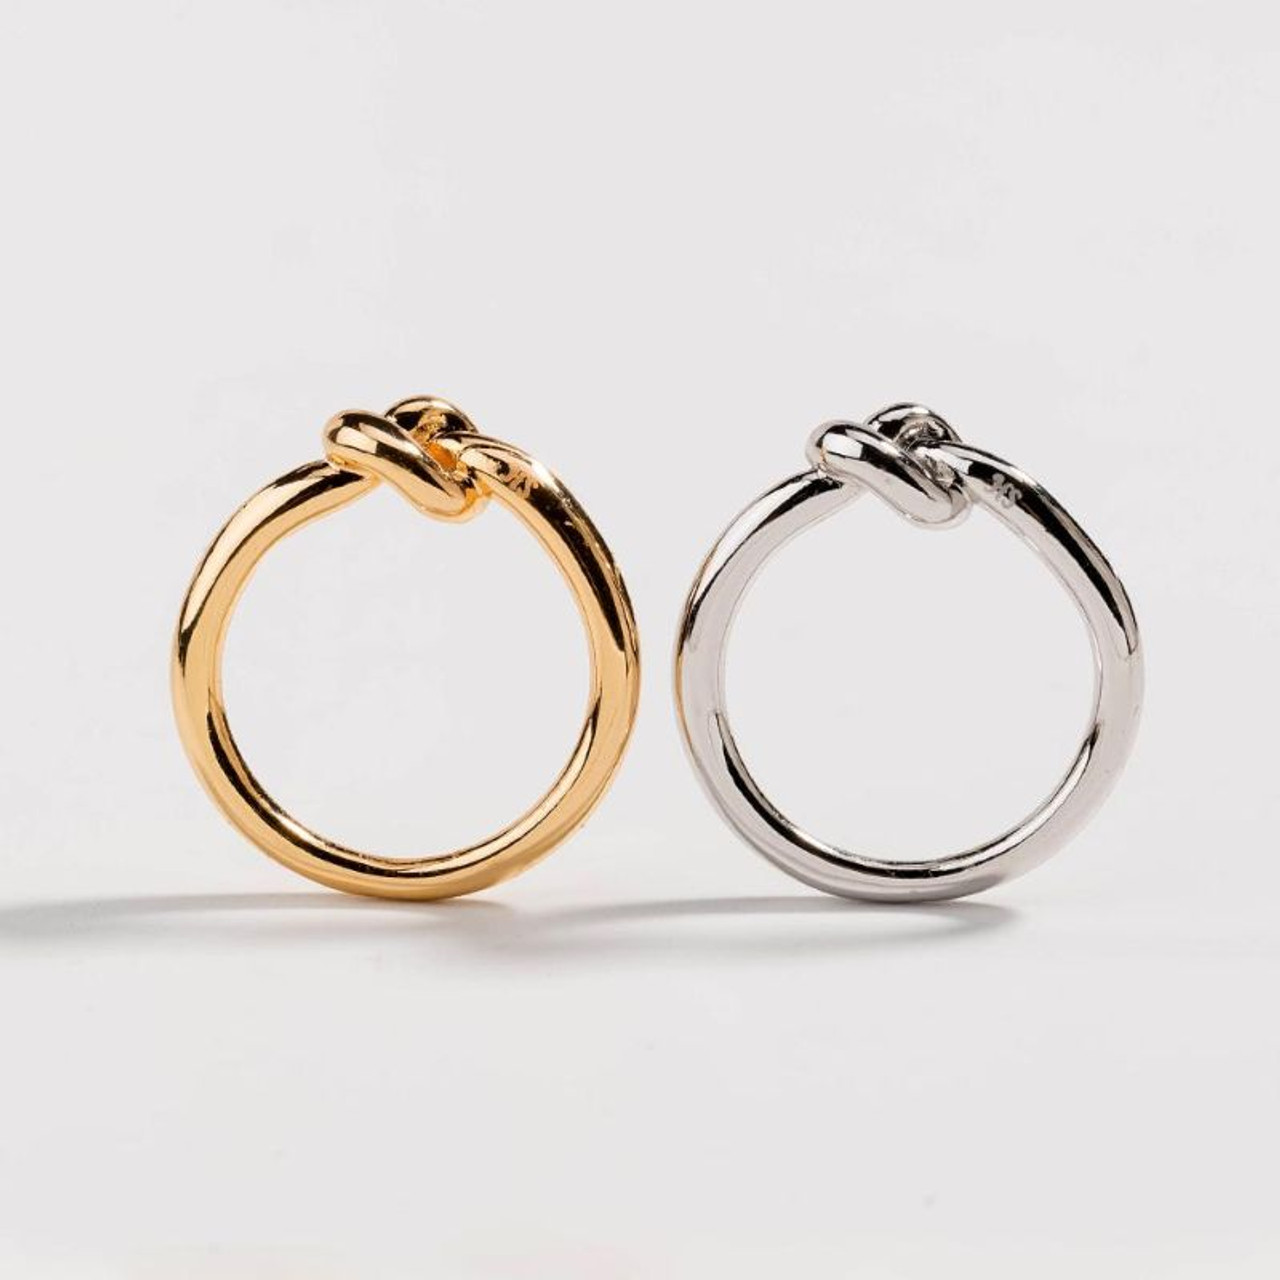 Women's Dainty Love Knot Ring Commitment Ring